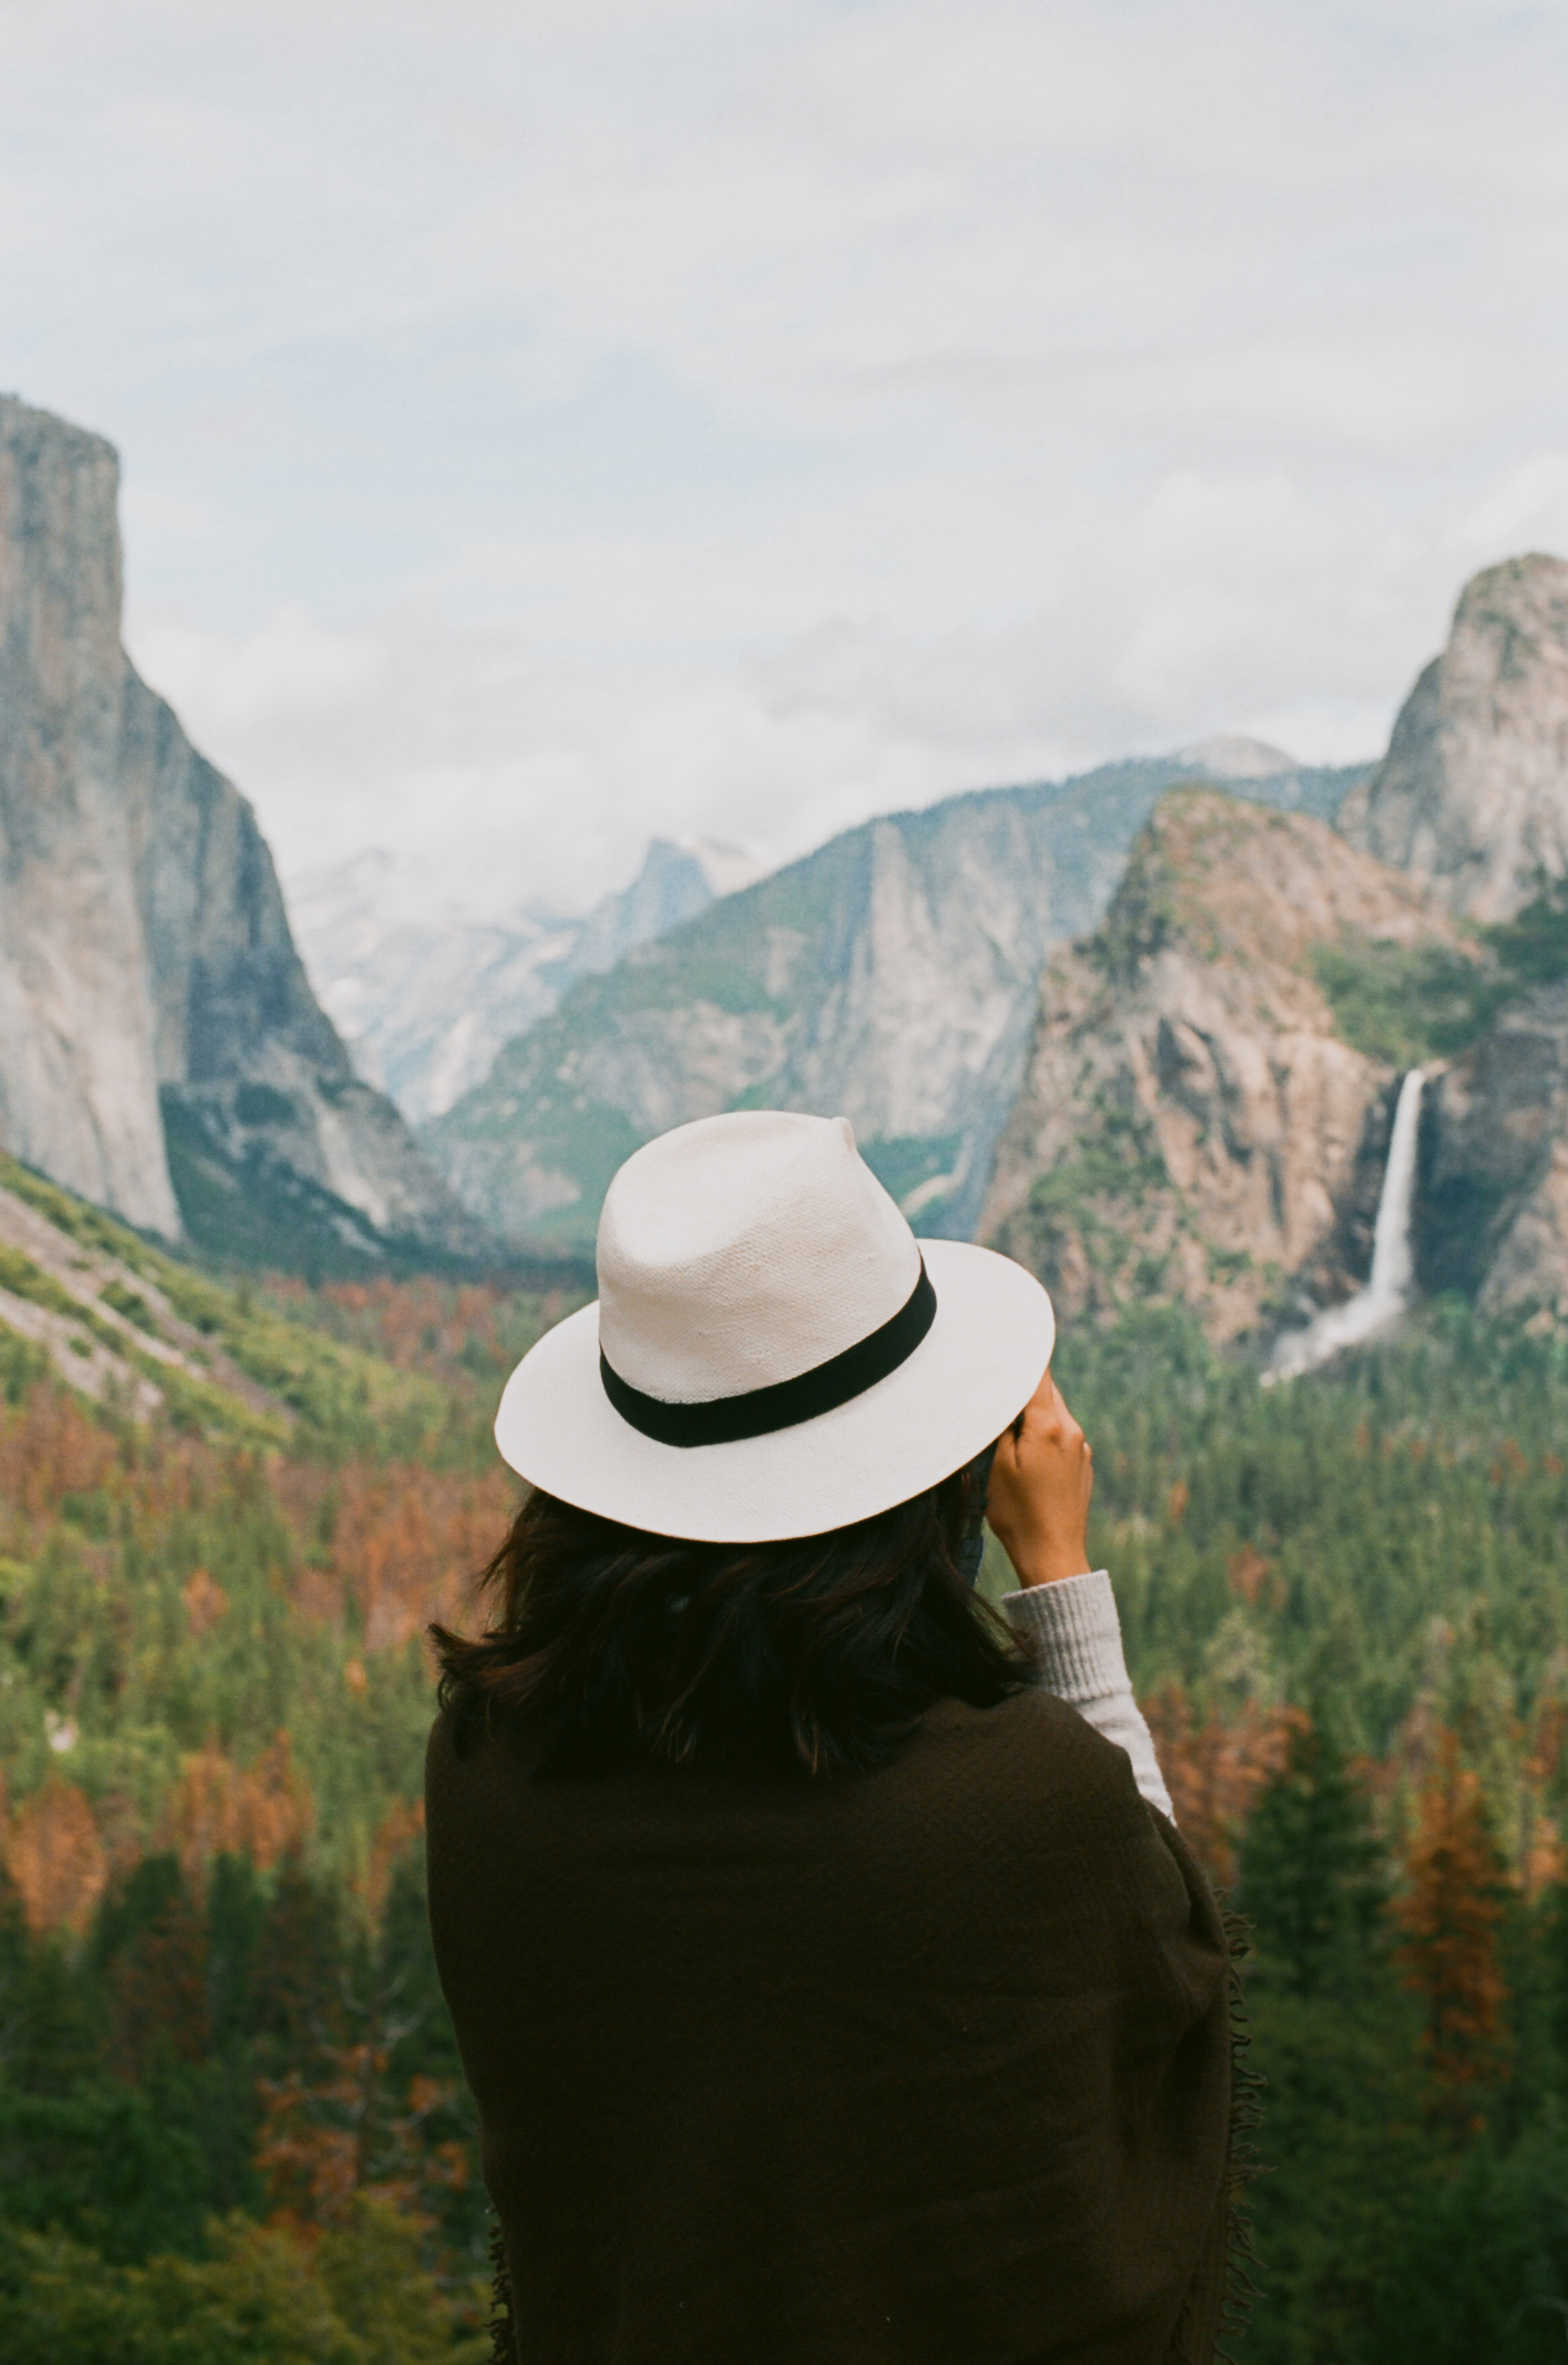 Melody @ Tunnel View (Ektar 100)